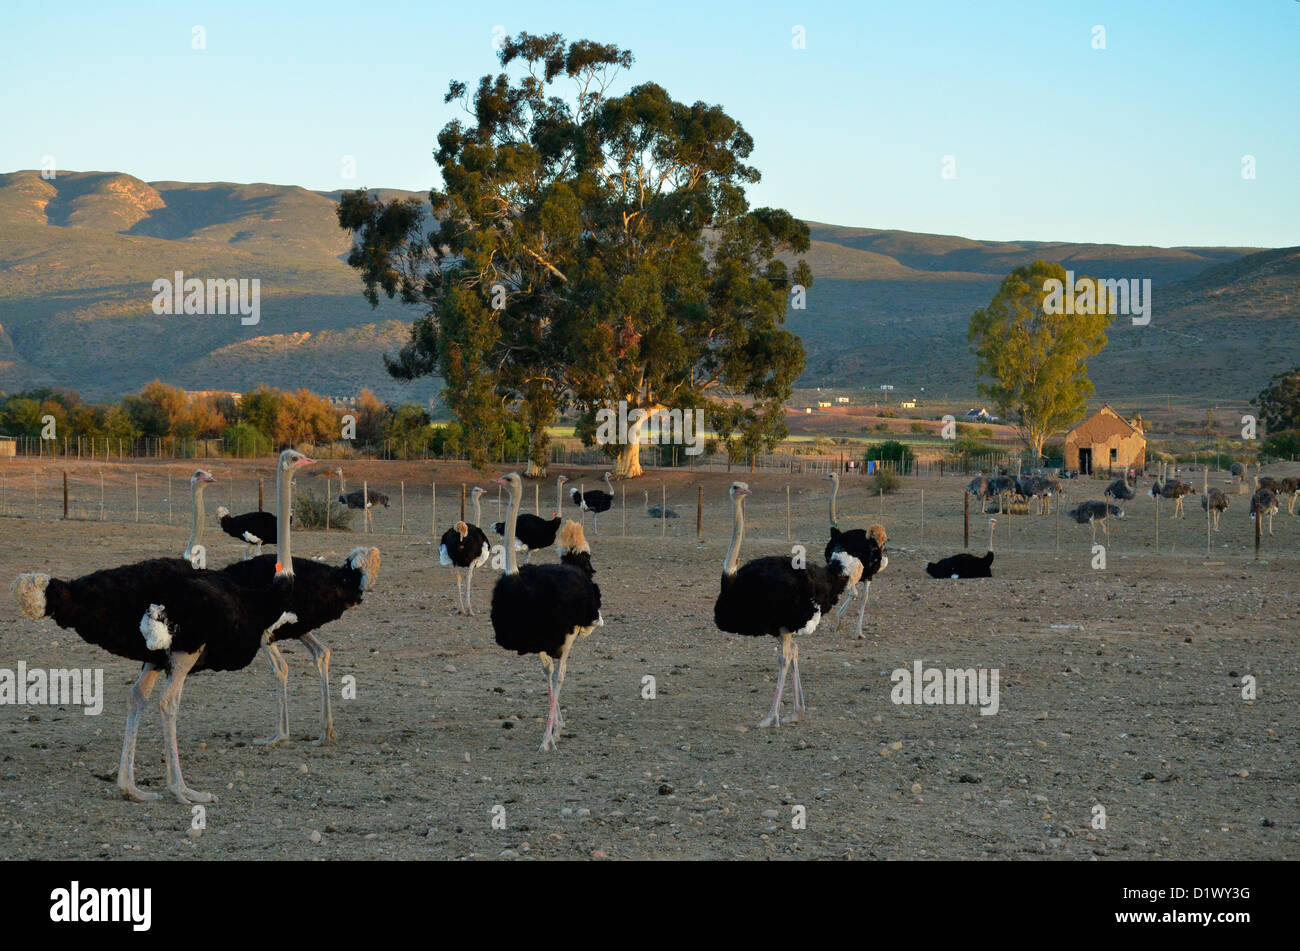 Male ostriches in black plumage on ostrich farm near Calitzdorp, Klein Karoo, South Africa - Stock Image